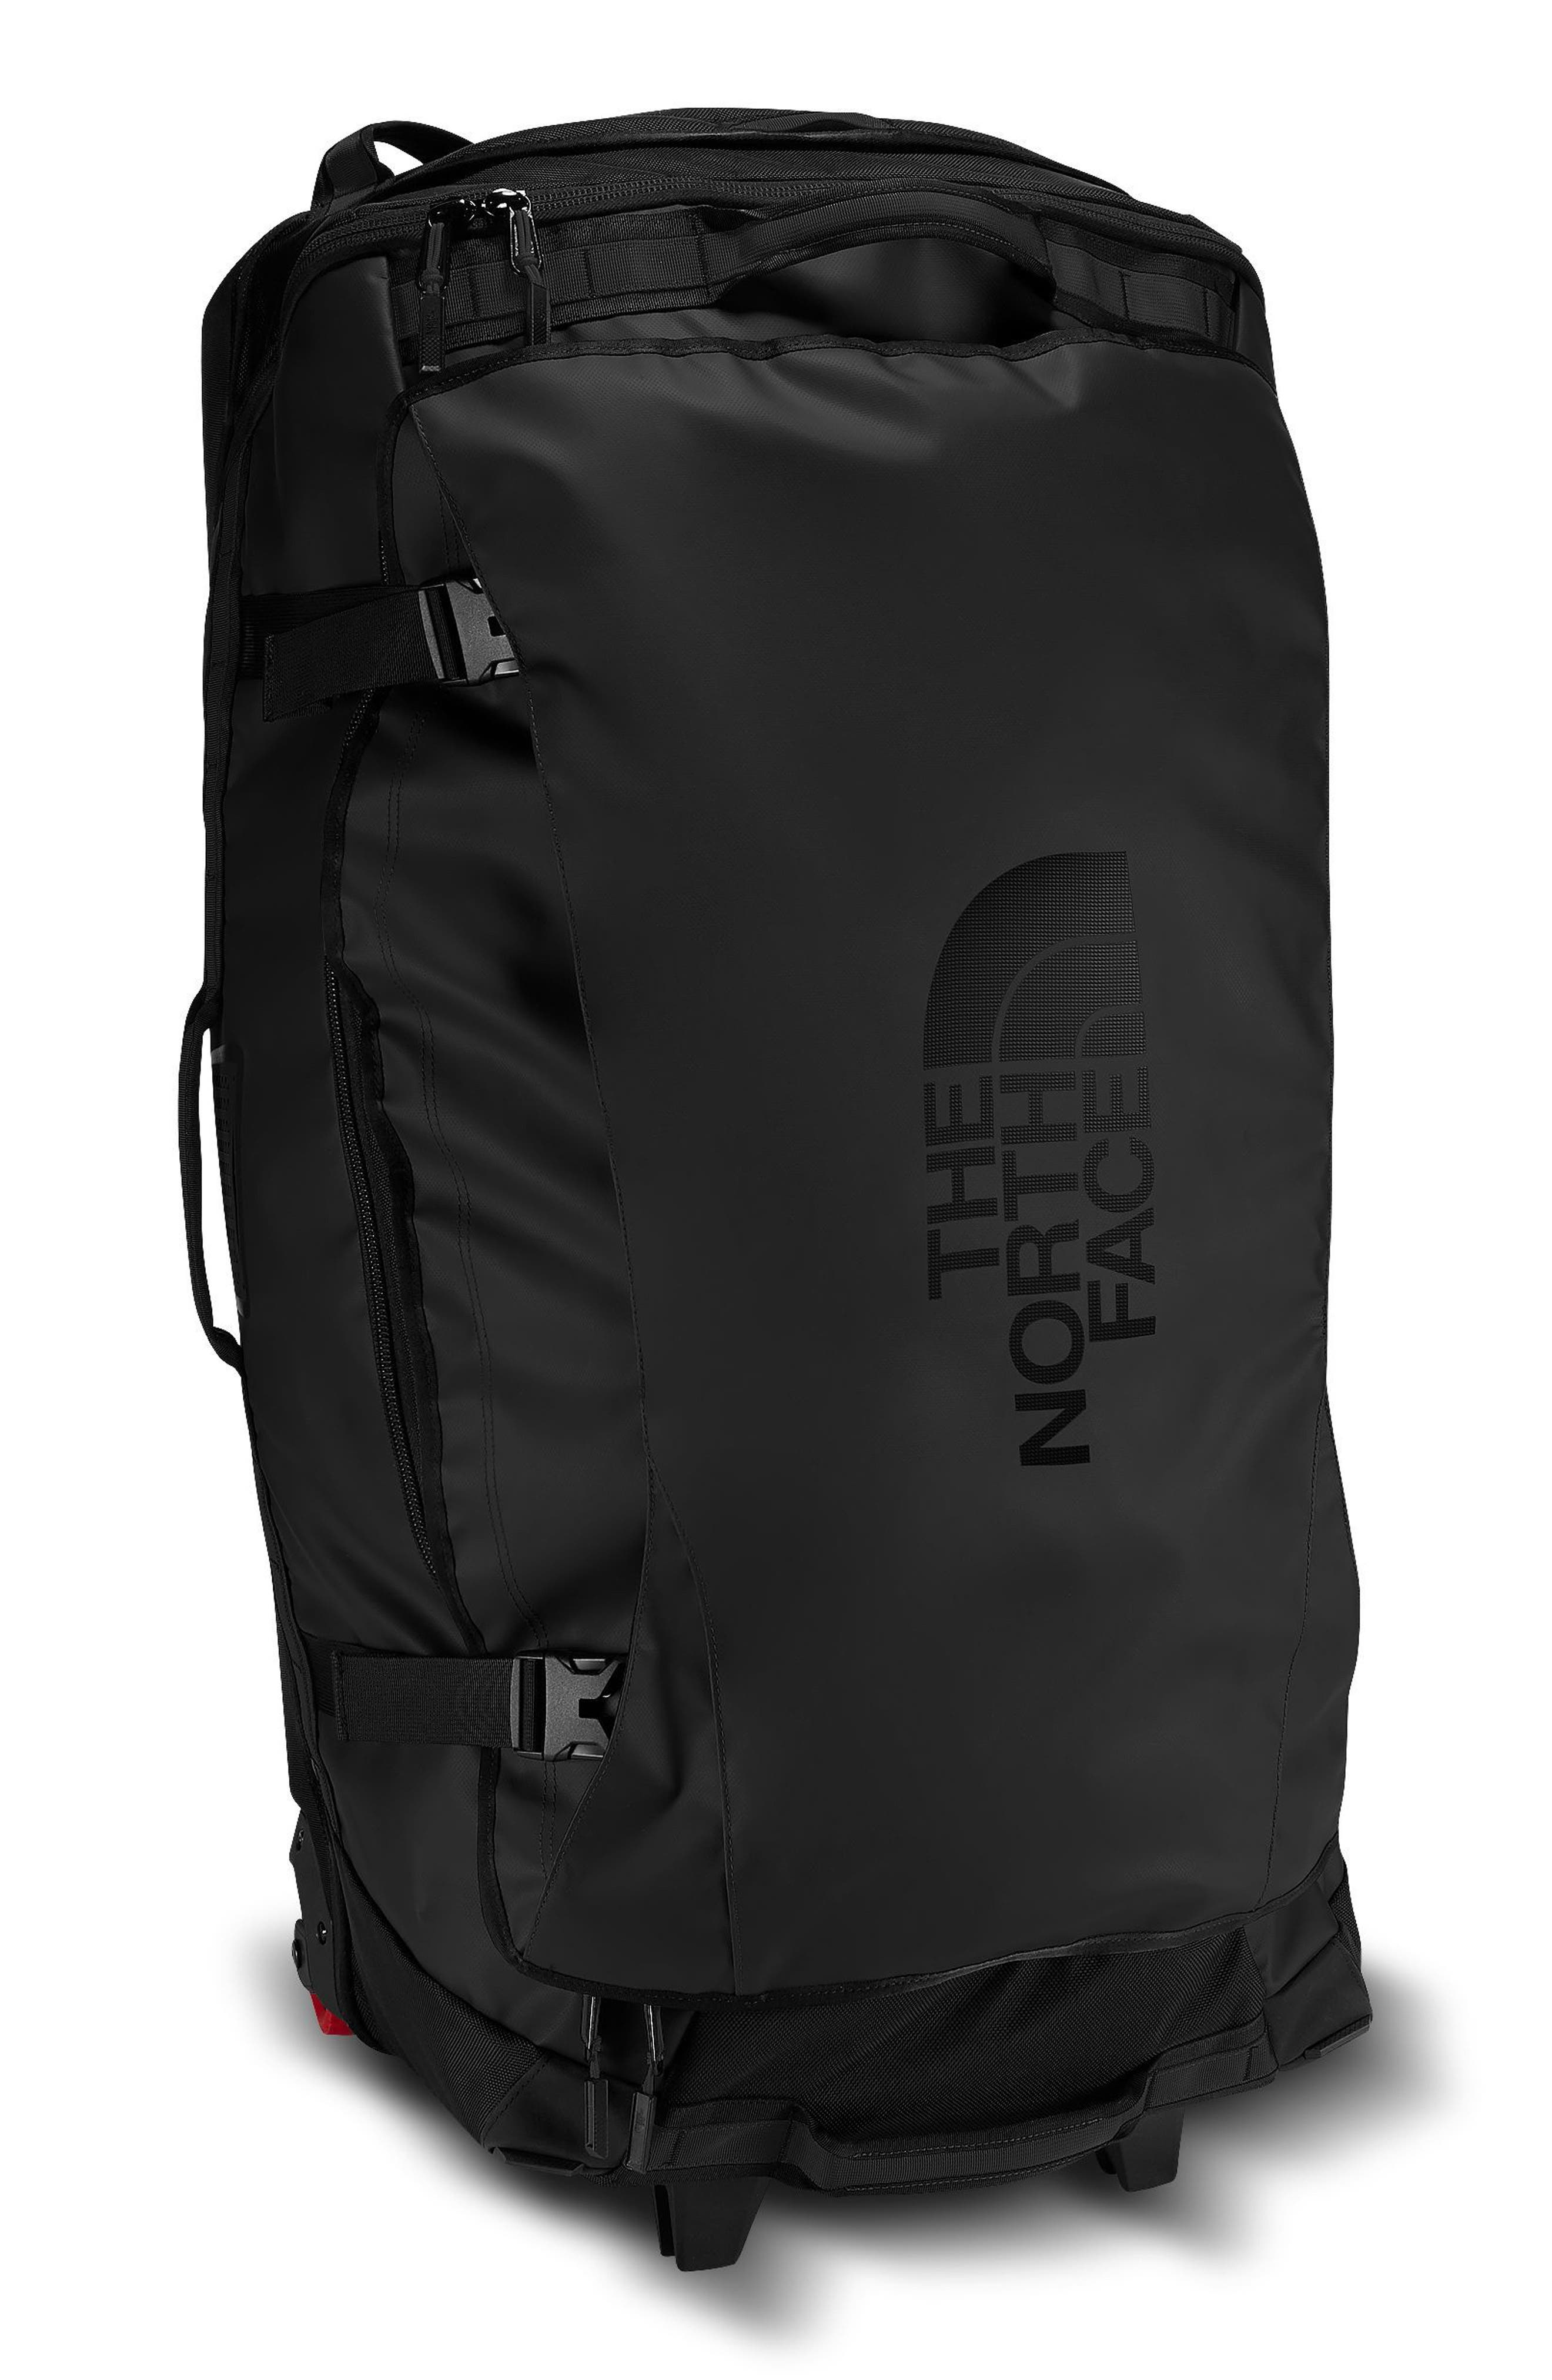 The North Face Rolling Thunder Wheeled Duffel Bag (36 Inch)